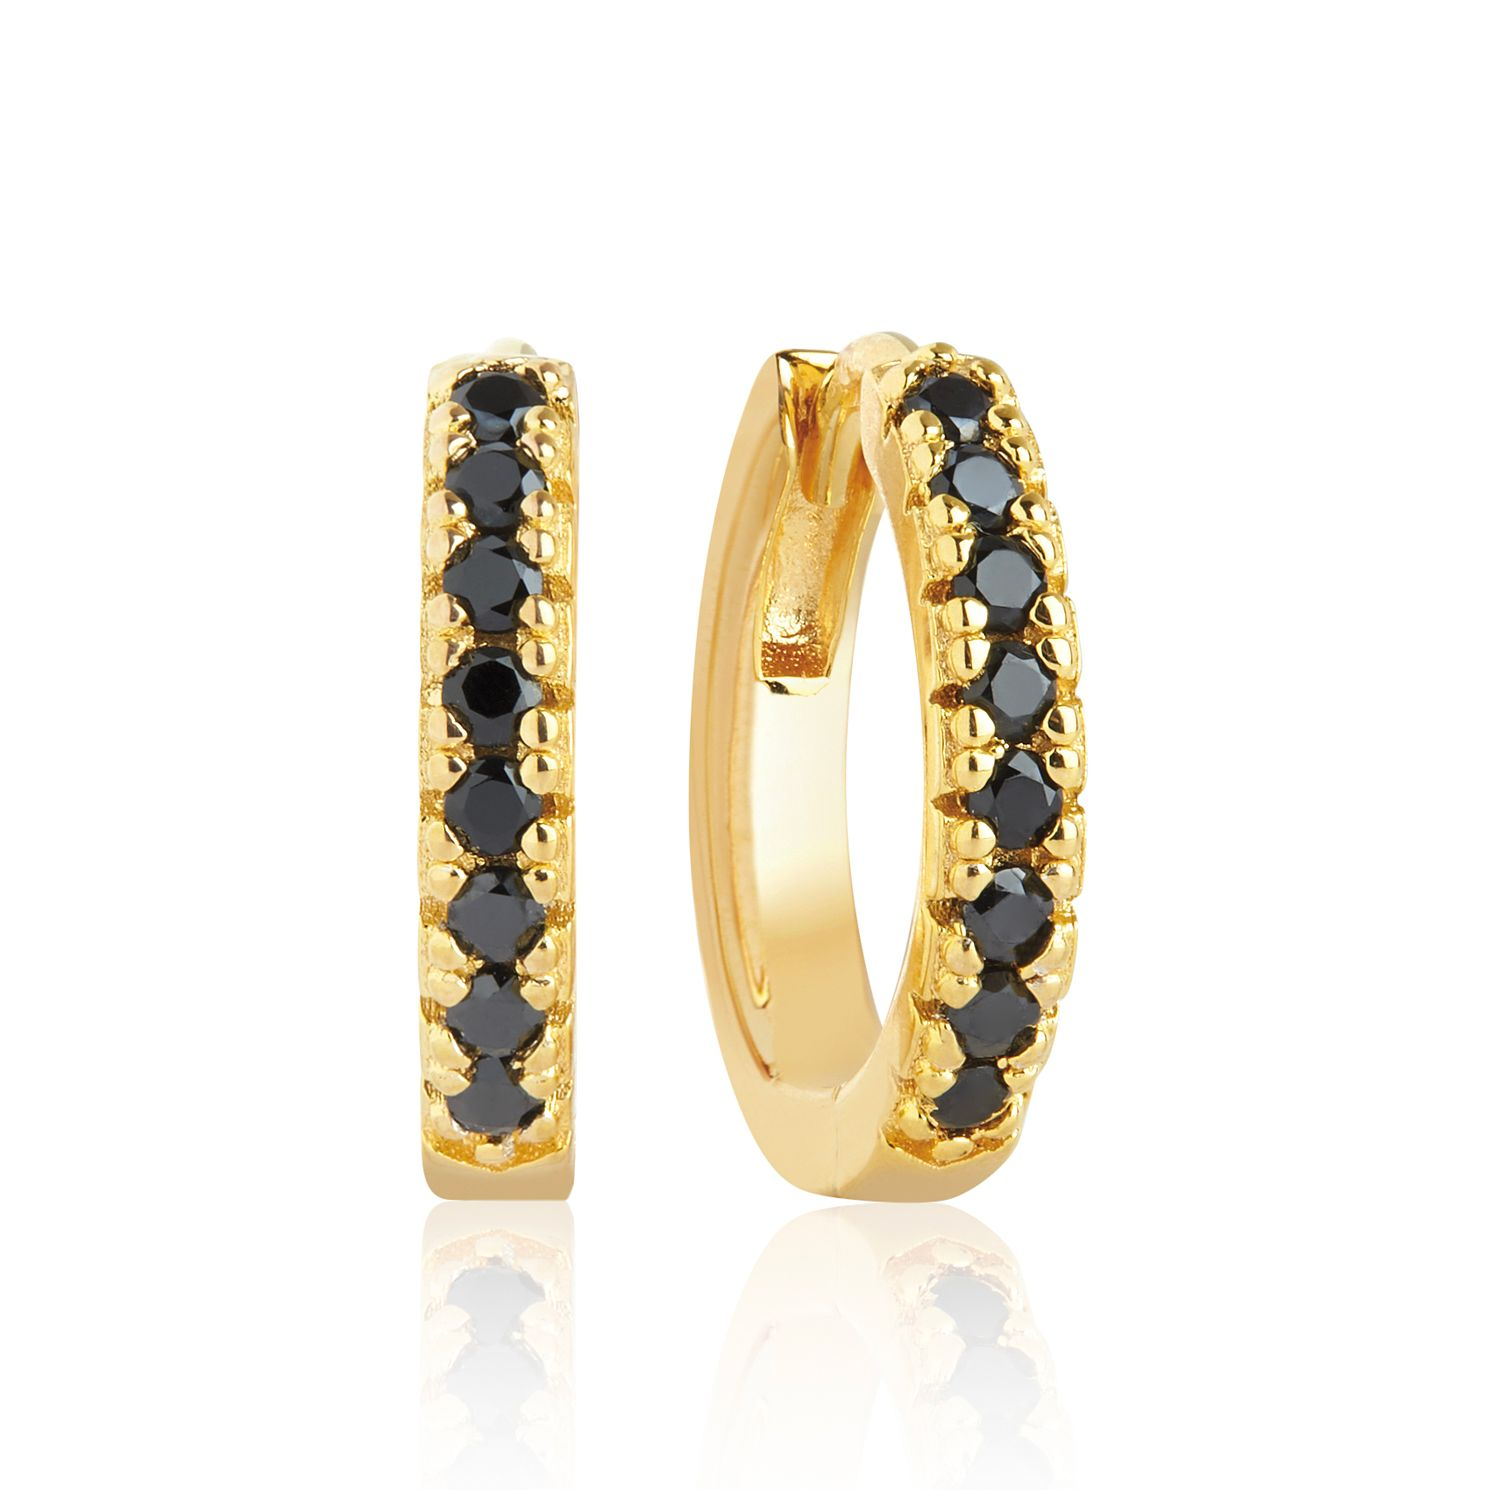 Sif Jakobs 18ct Gold Plate Black Zirconia 14mm Hoop Earrings - Product number 1160818